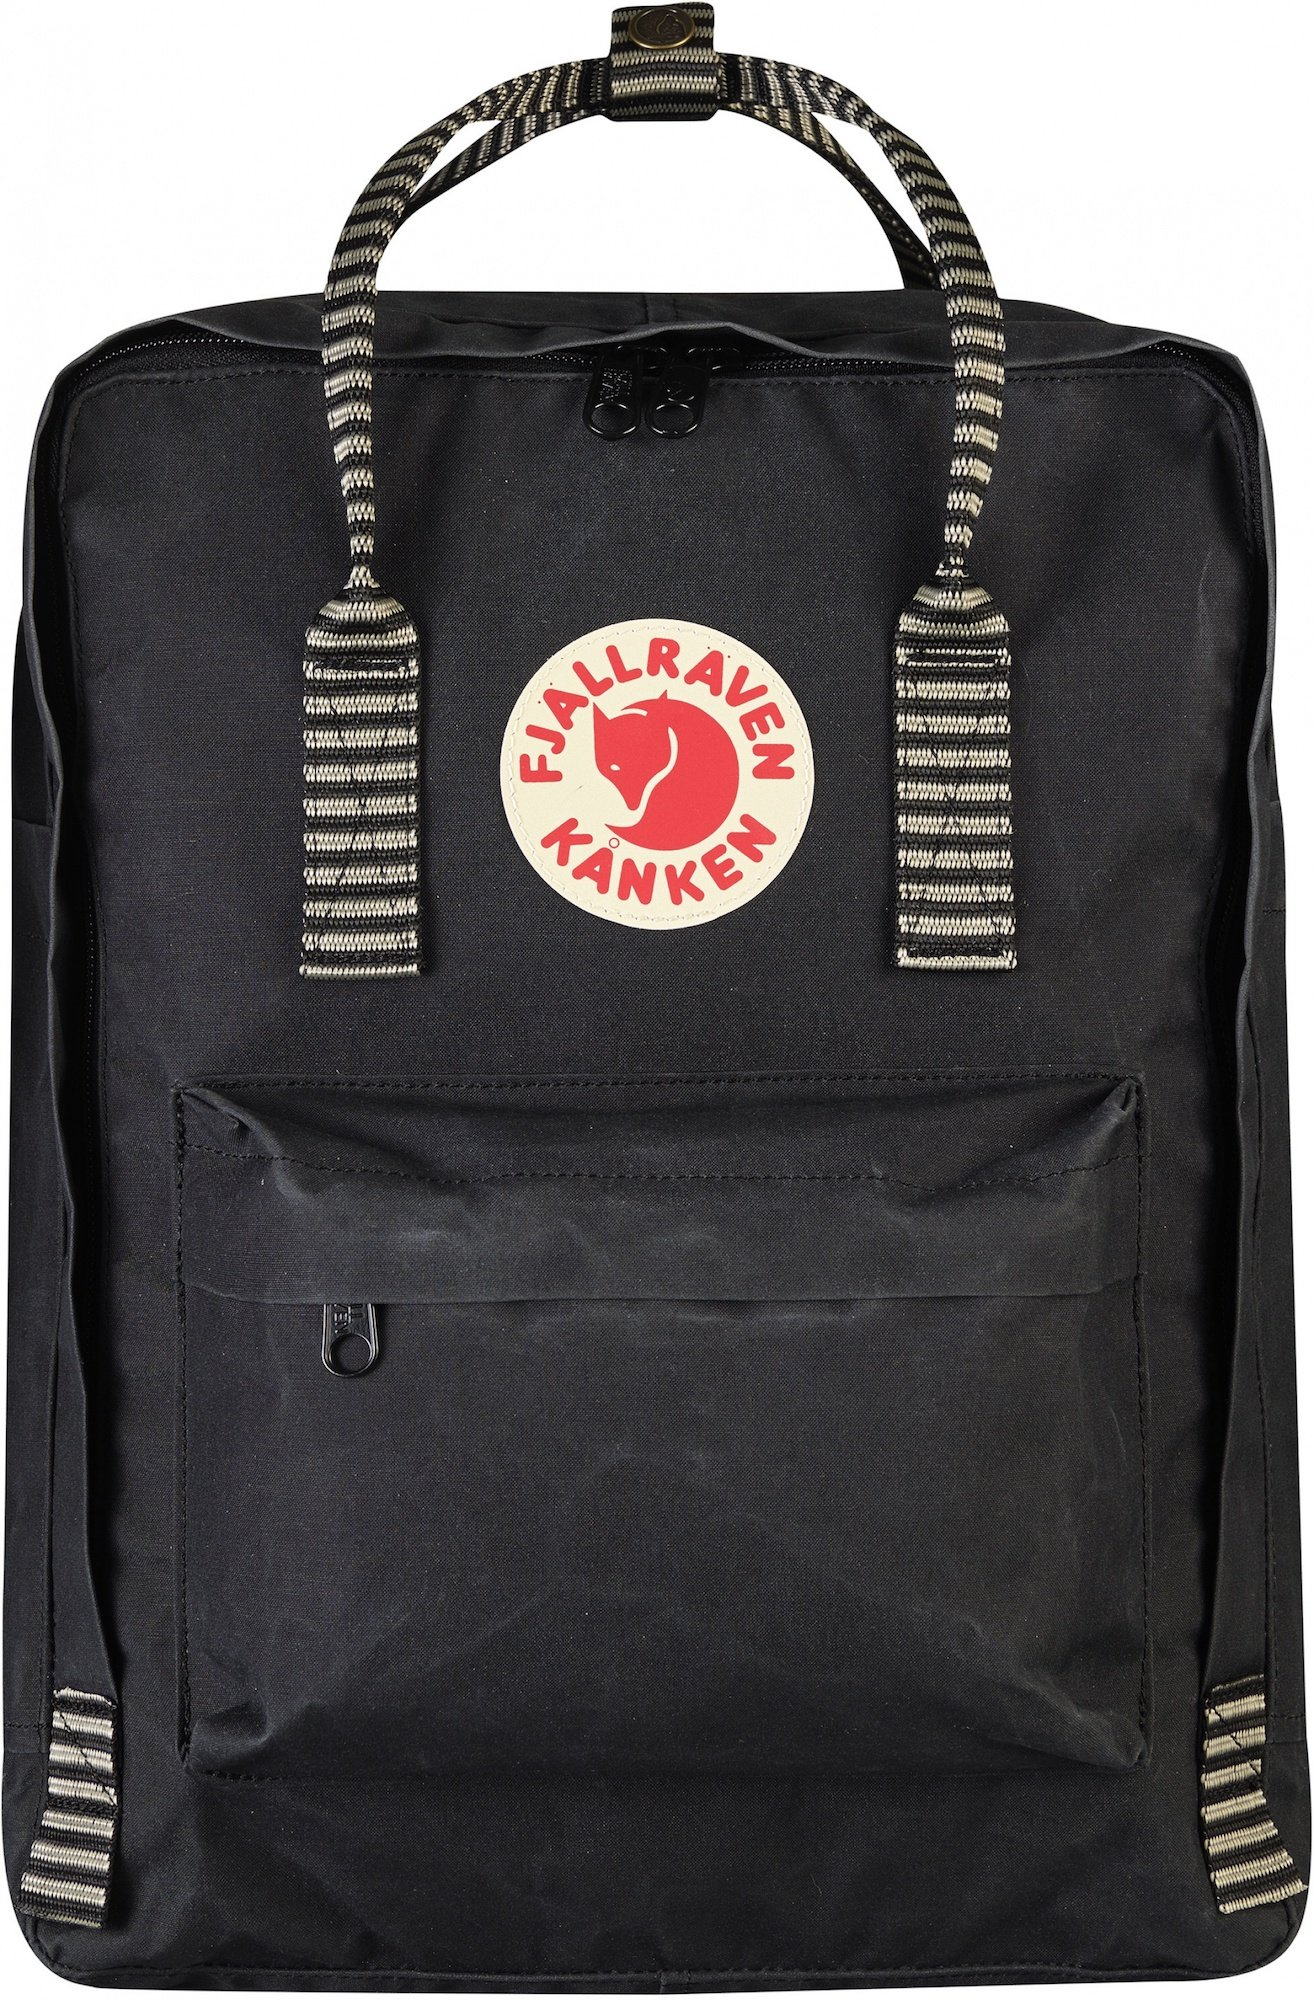 b74cc018b7f520 Jual Fjallraven Fjallraven Kanken Classic Backpack Black Striped ...